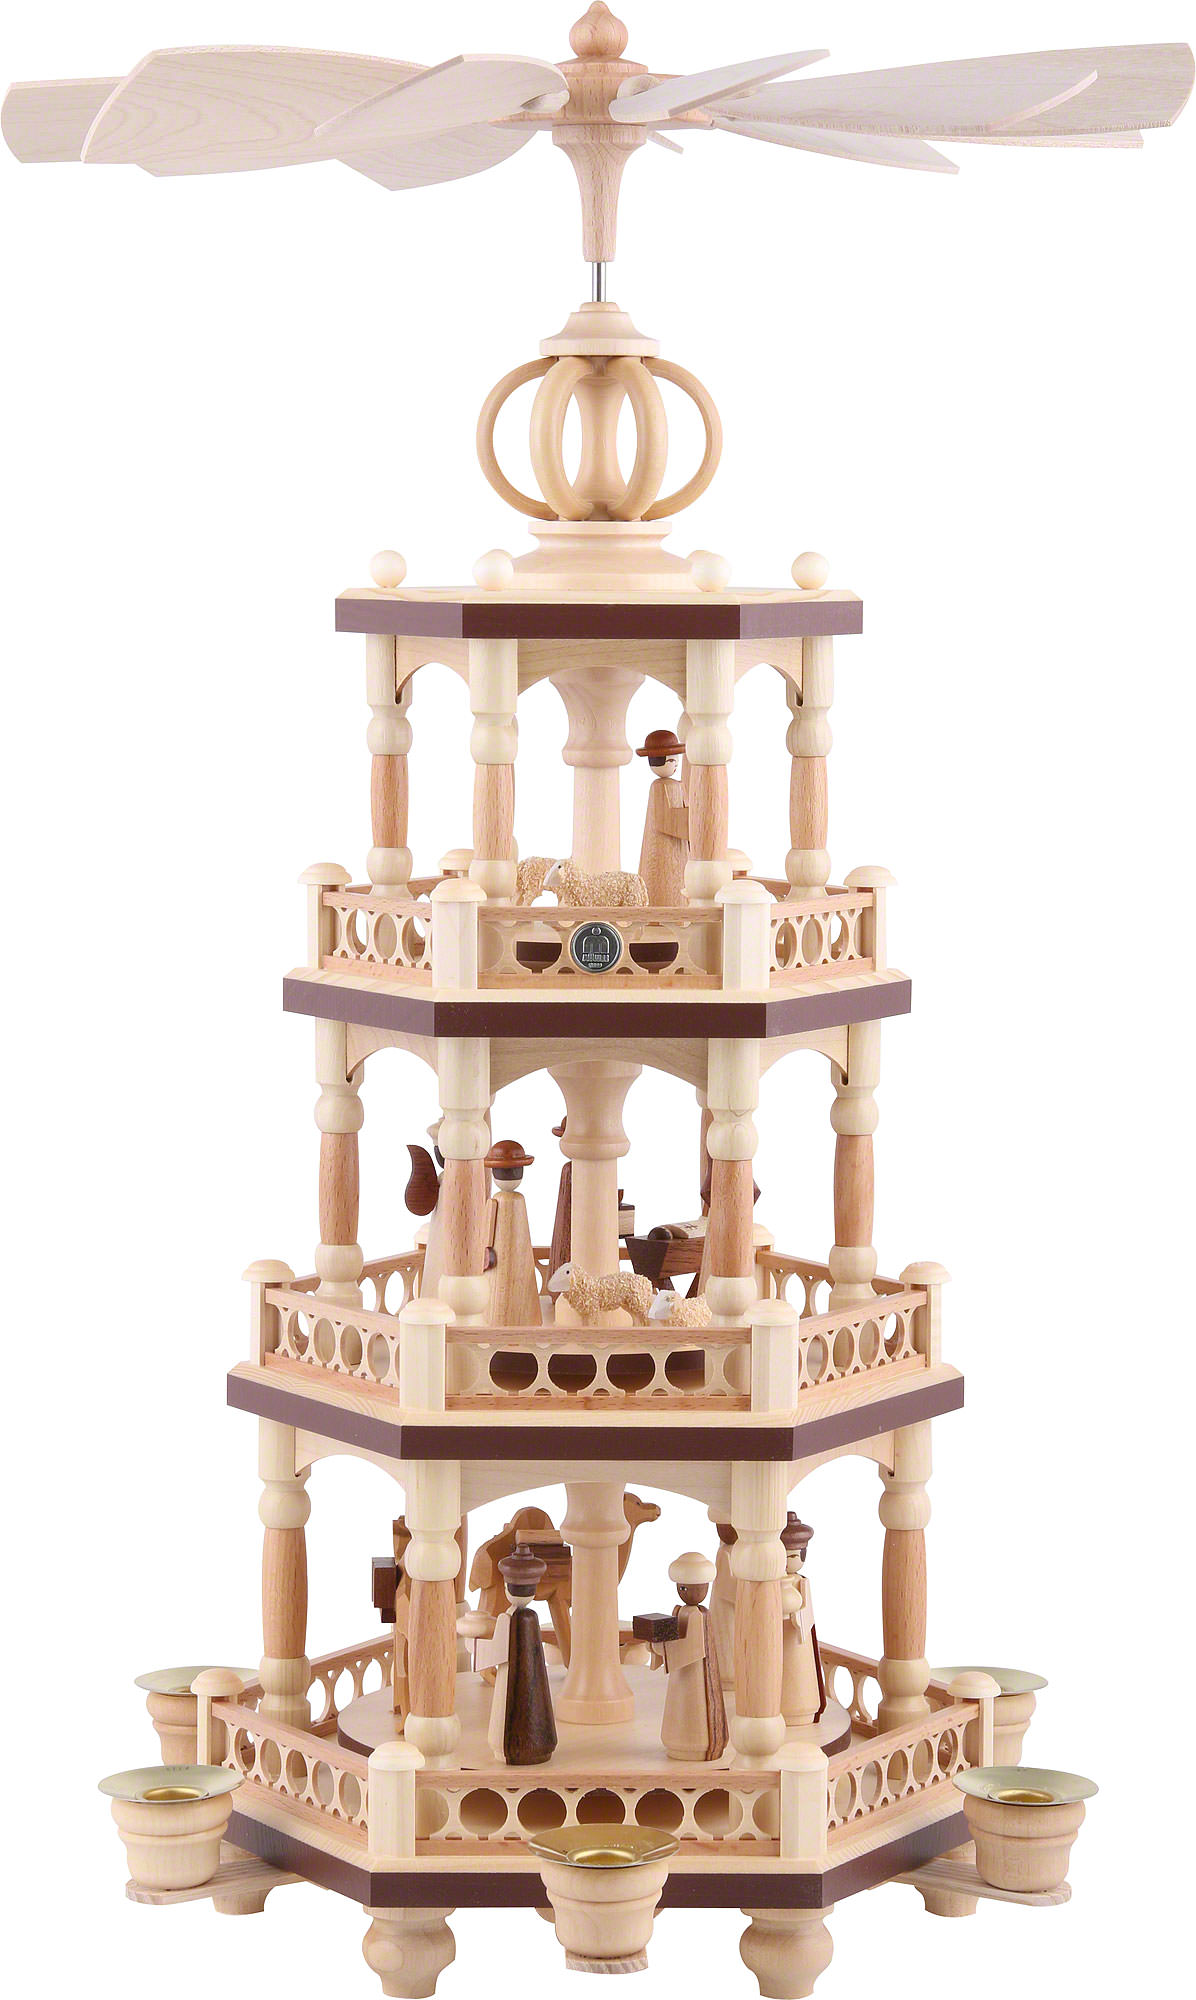 Christmas Pyramid.3 Tier Pyramid The Christmas Story 51 Cm 20 Inch